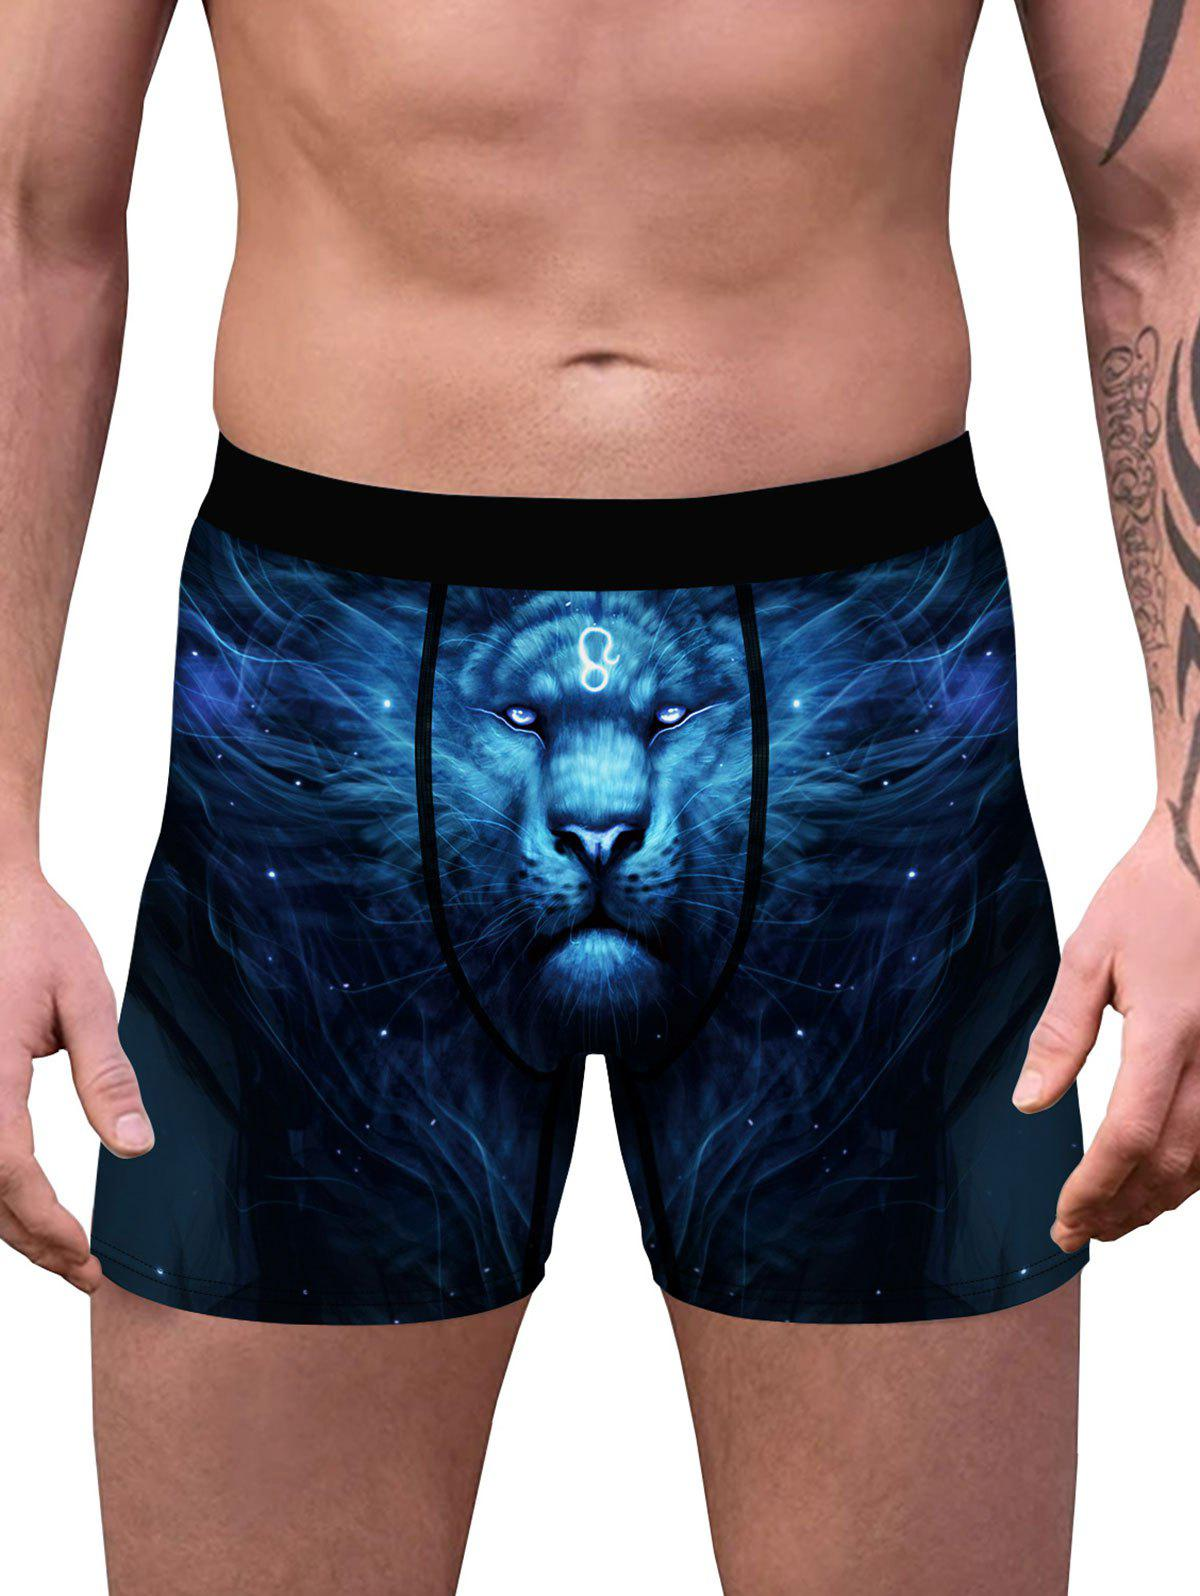 Chic Galaxy Lion 3D Print Boxers